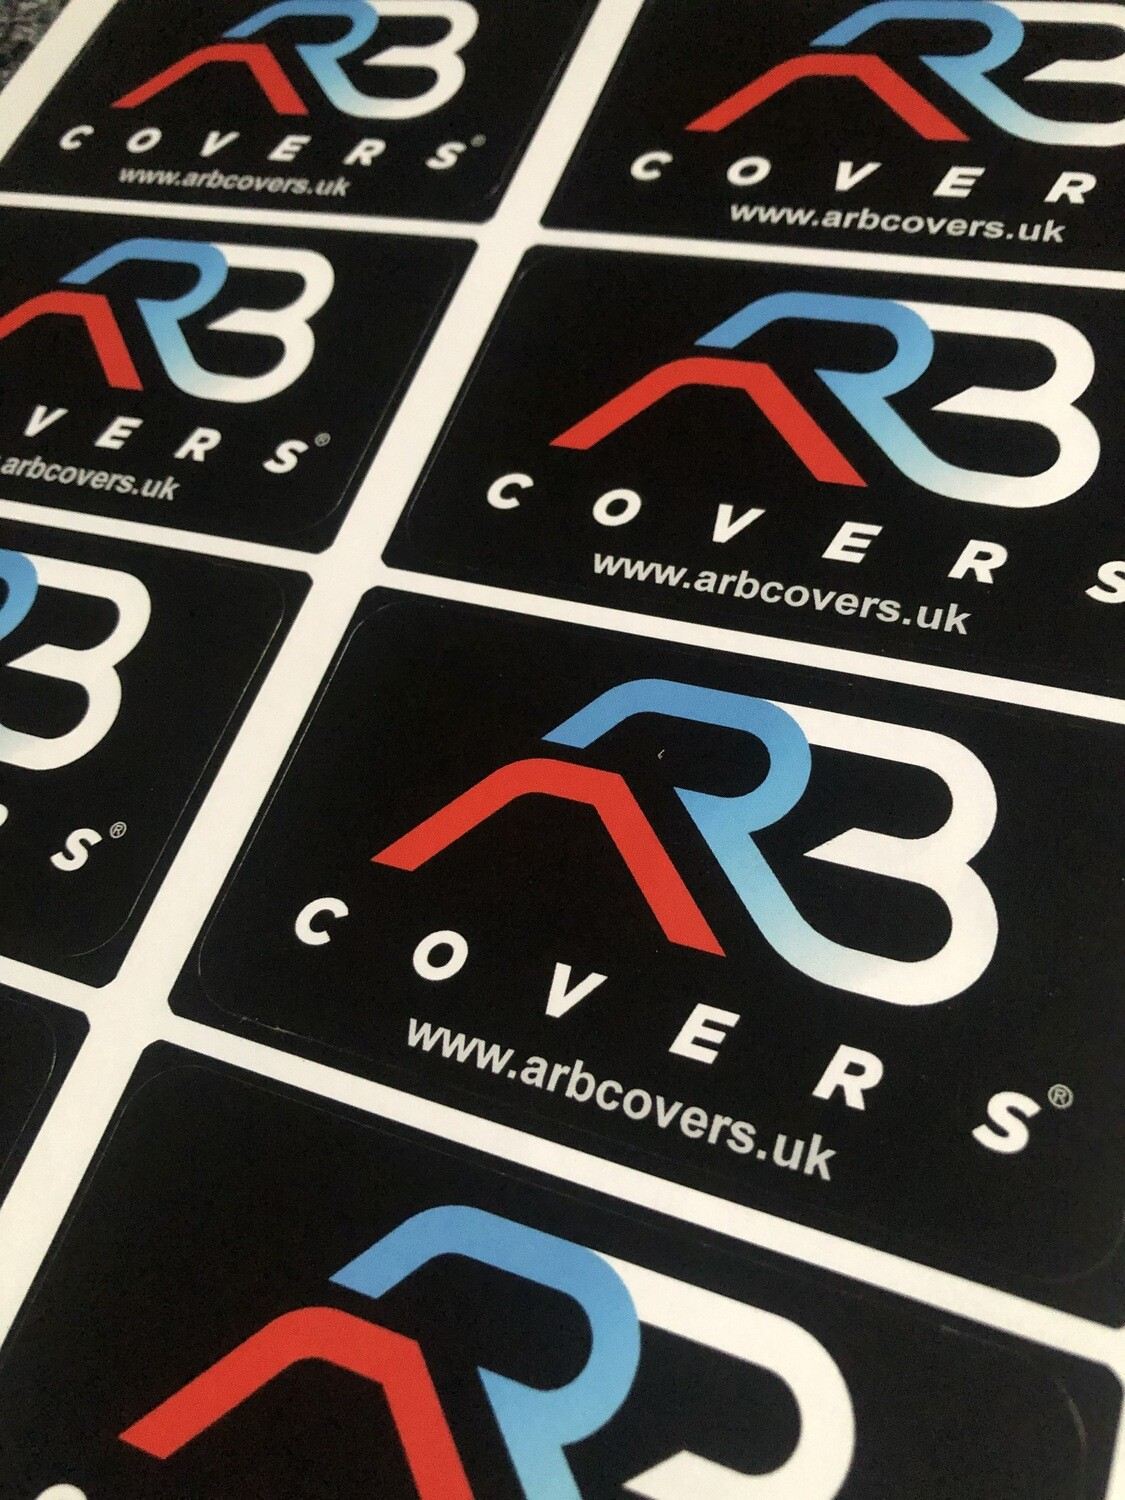 **FREE ARB Covers Stickers**